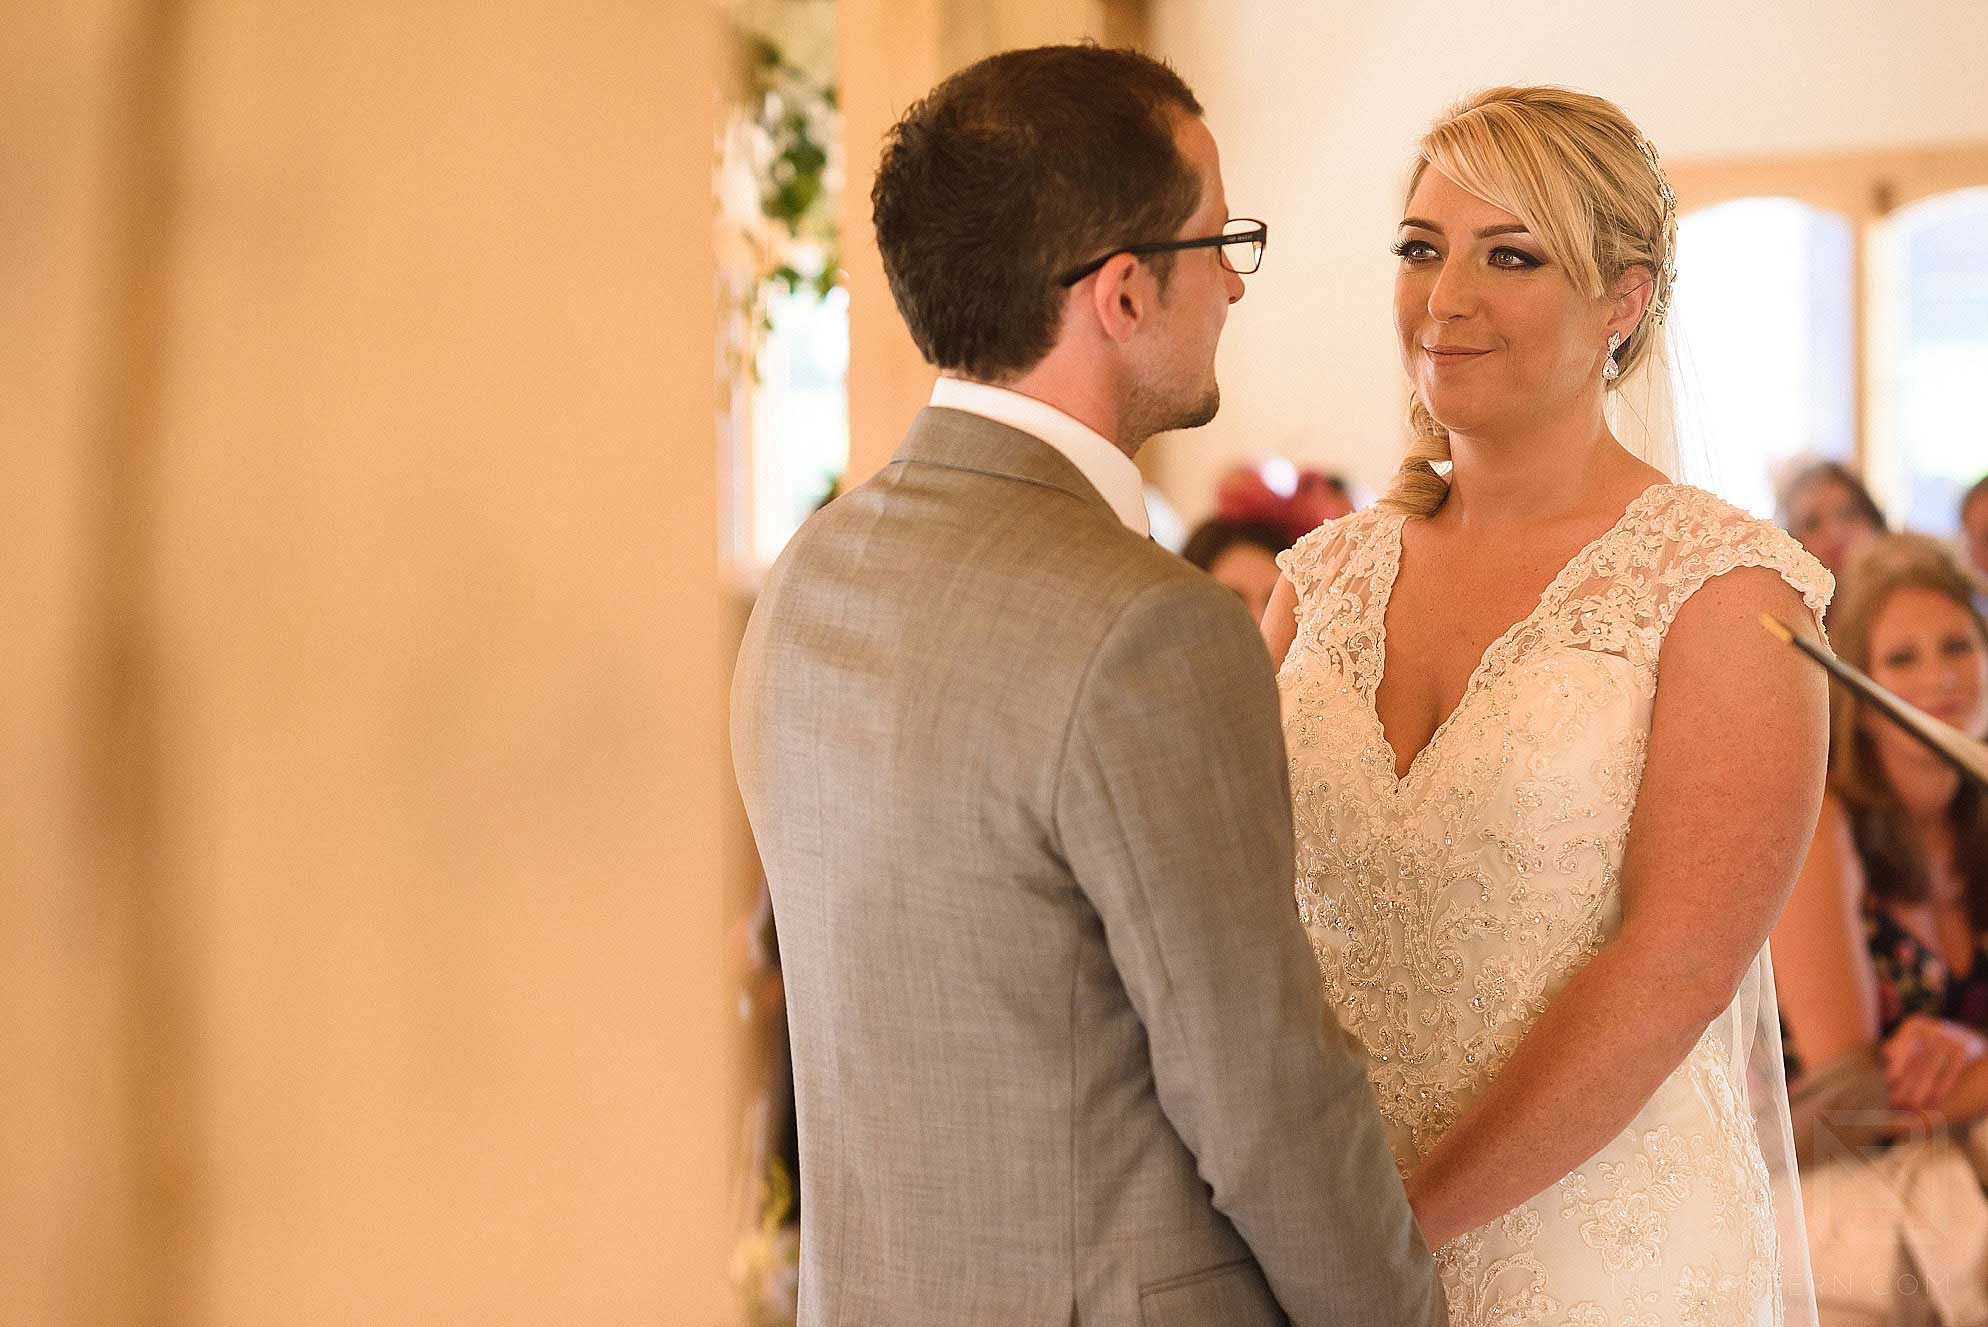 bride and groom saying vows during ceremony